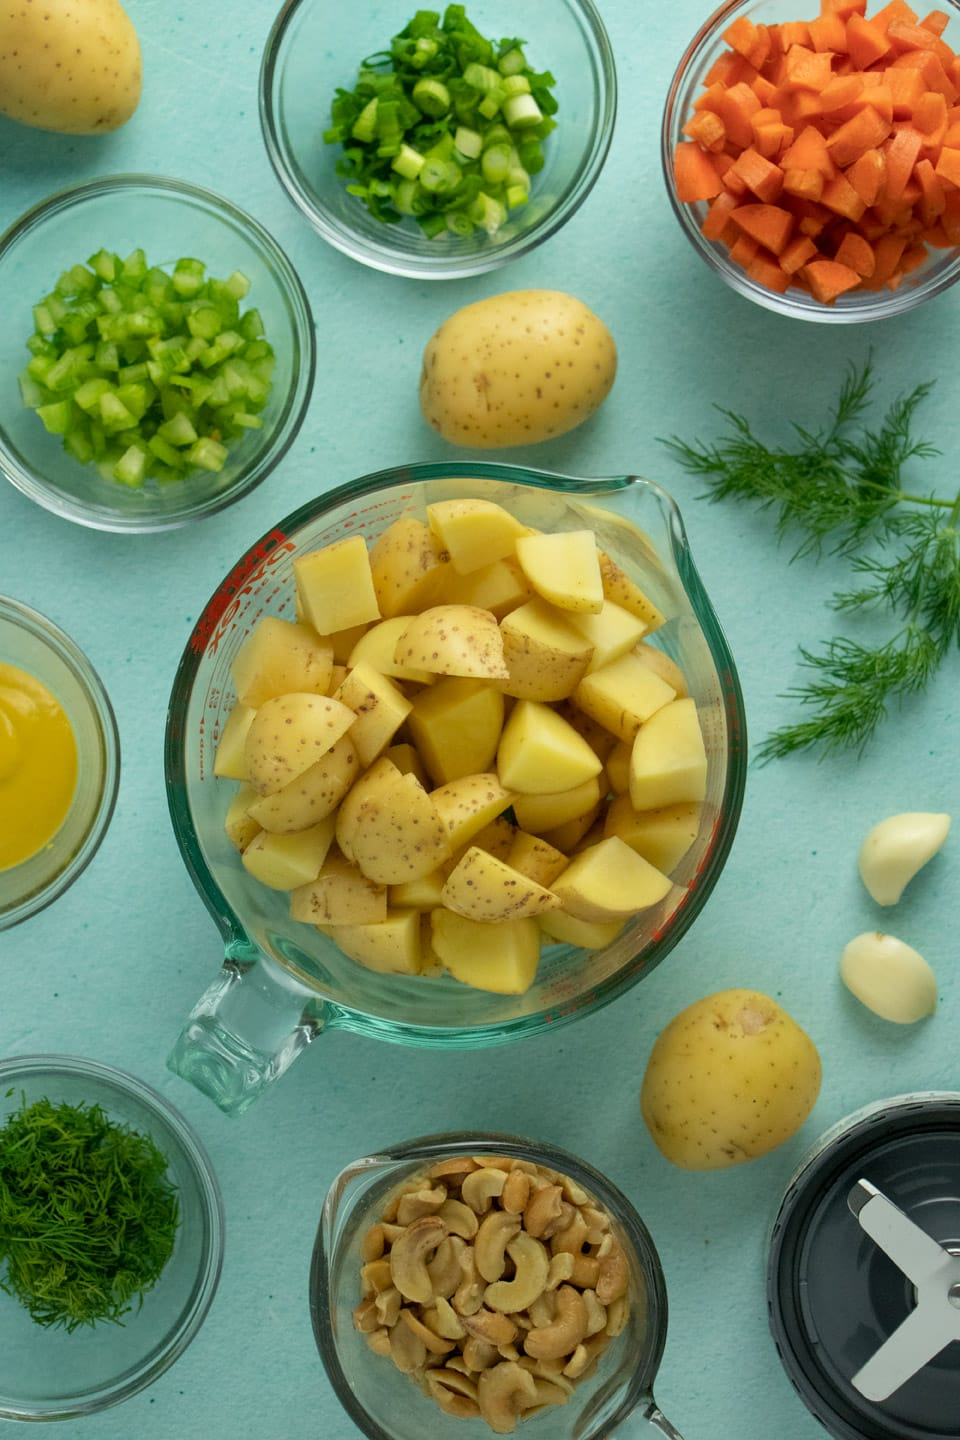 blue table with glass bowls of cubed potatoes, diced vegetables, garlic cloves, whole potatoes, soaked cashews, and a blender blade